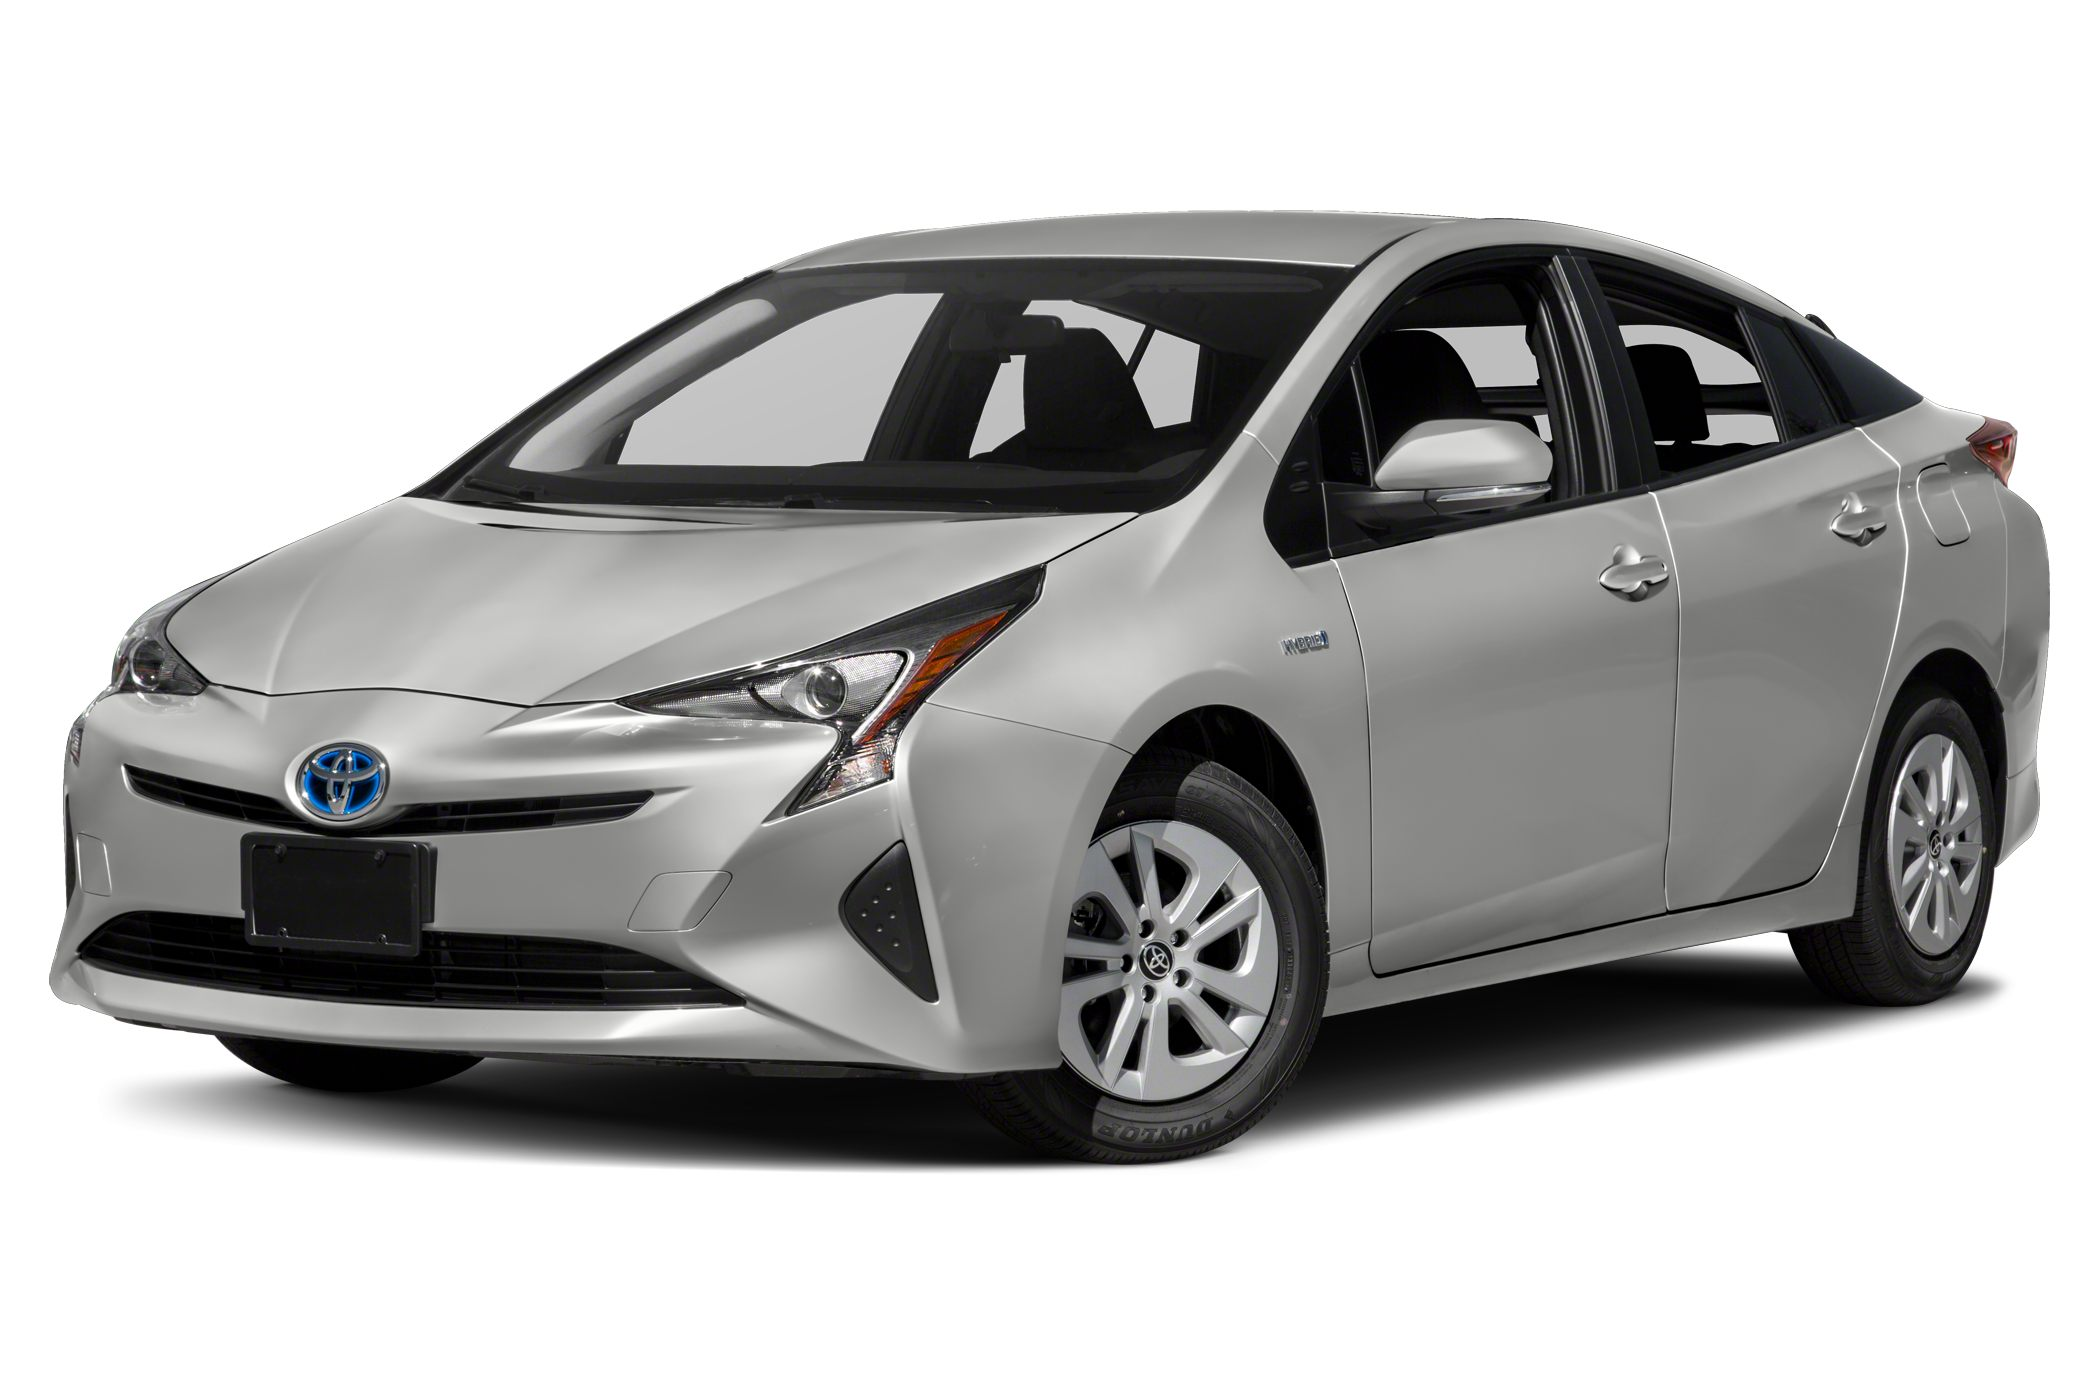 2017 Toyota Prius Two Two trim Keyless Start CD Player Alloy Wheels Back-Up Camera Hybrid Bl